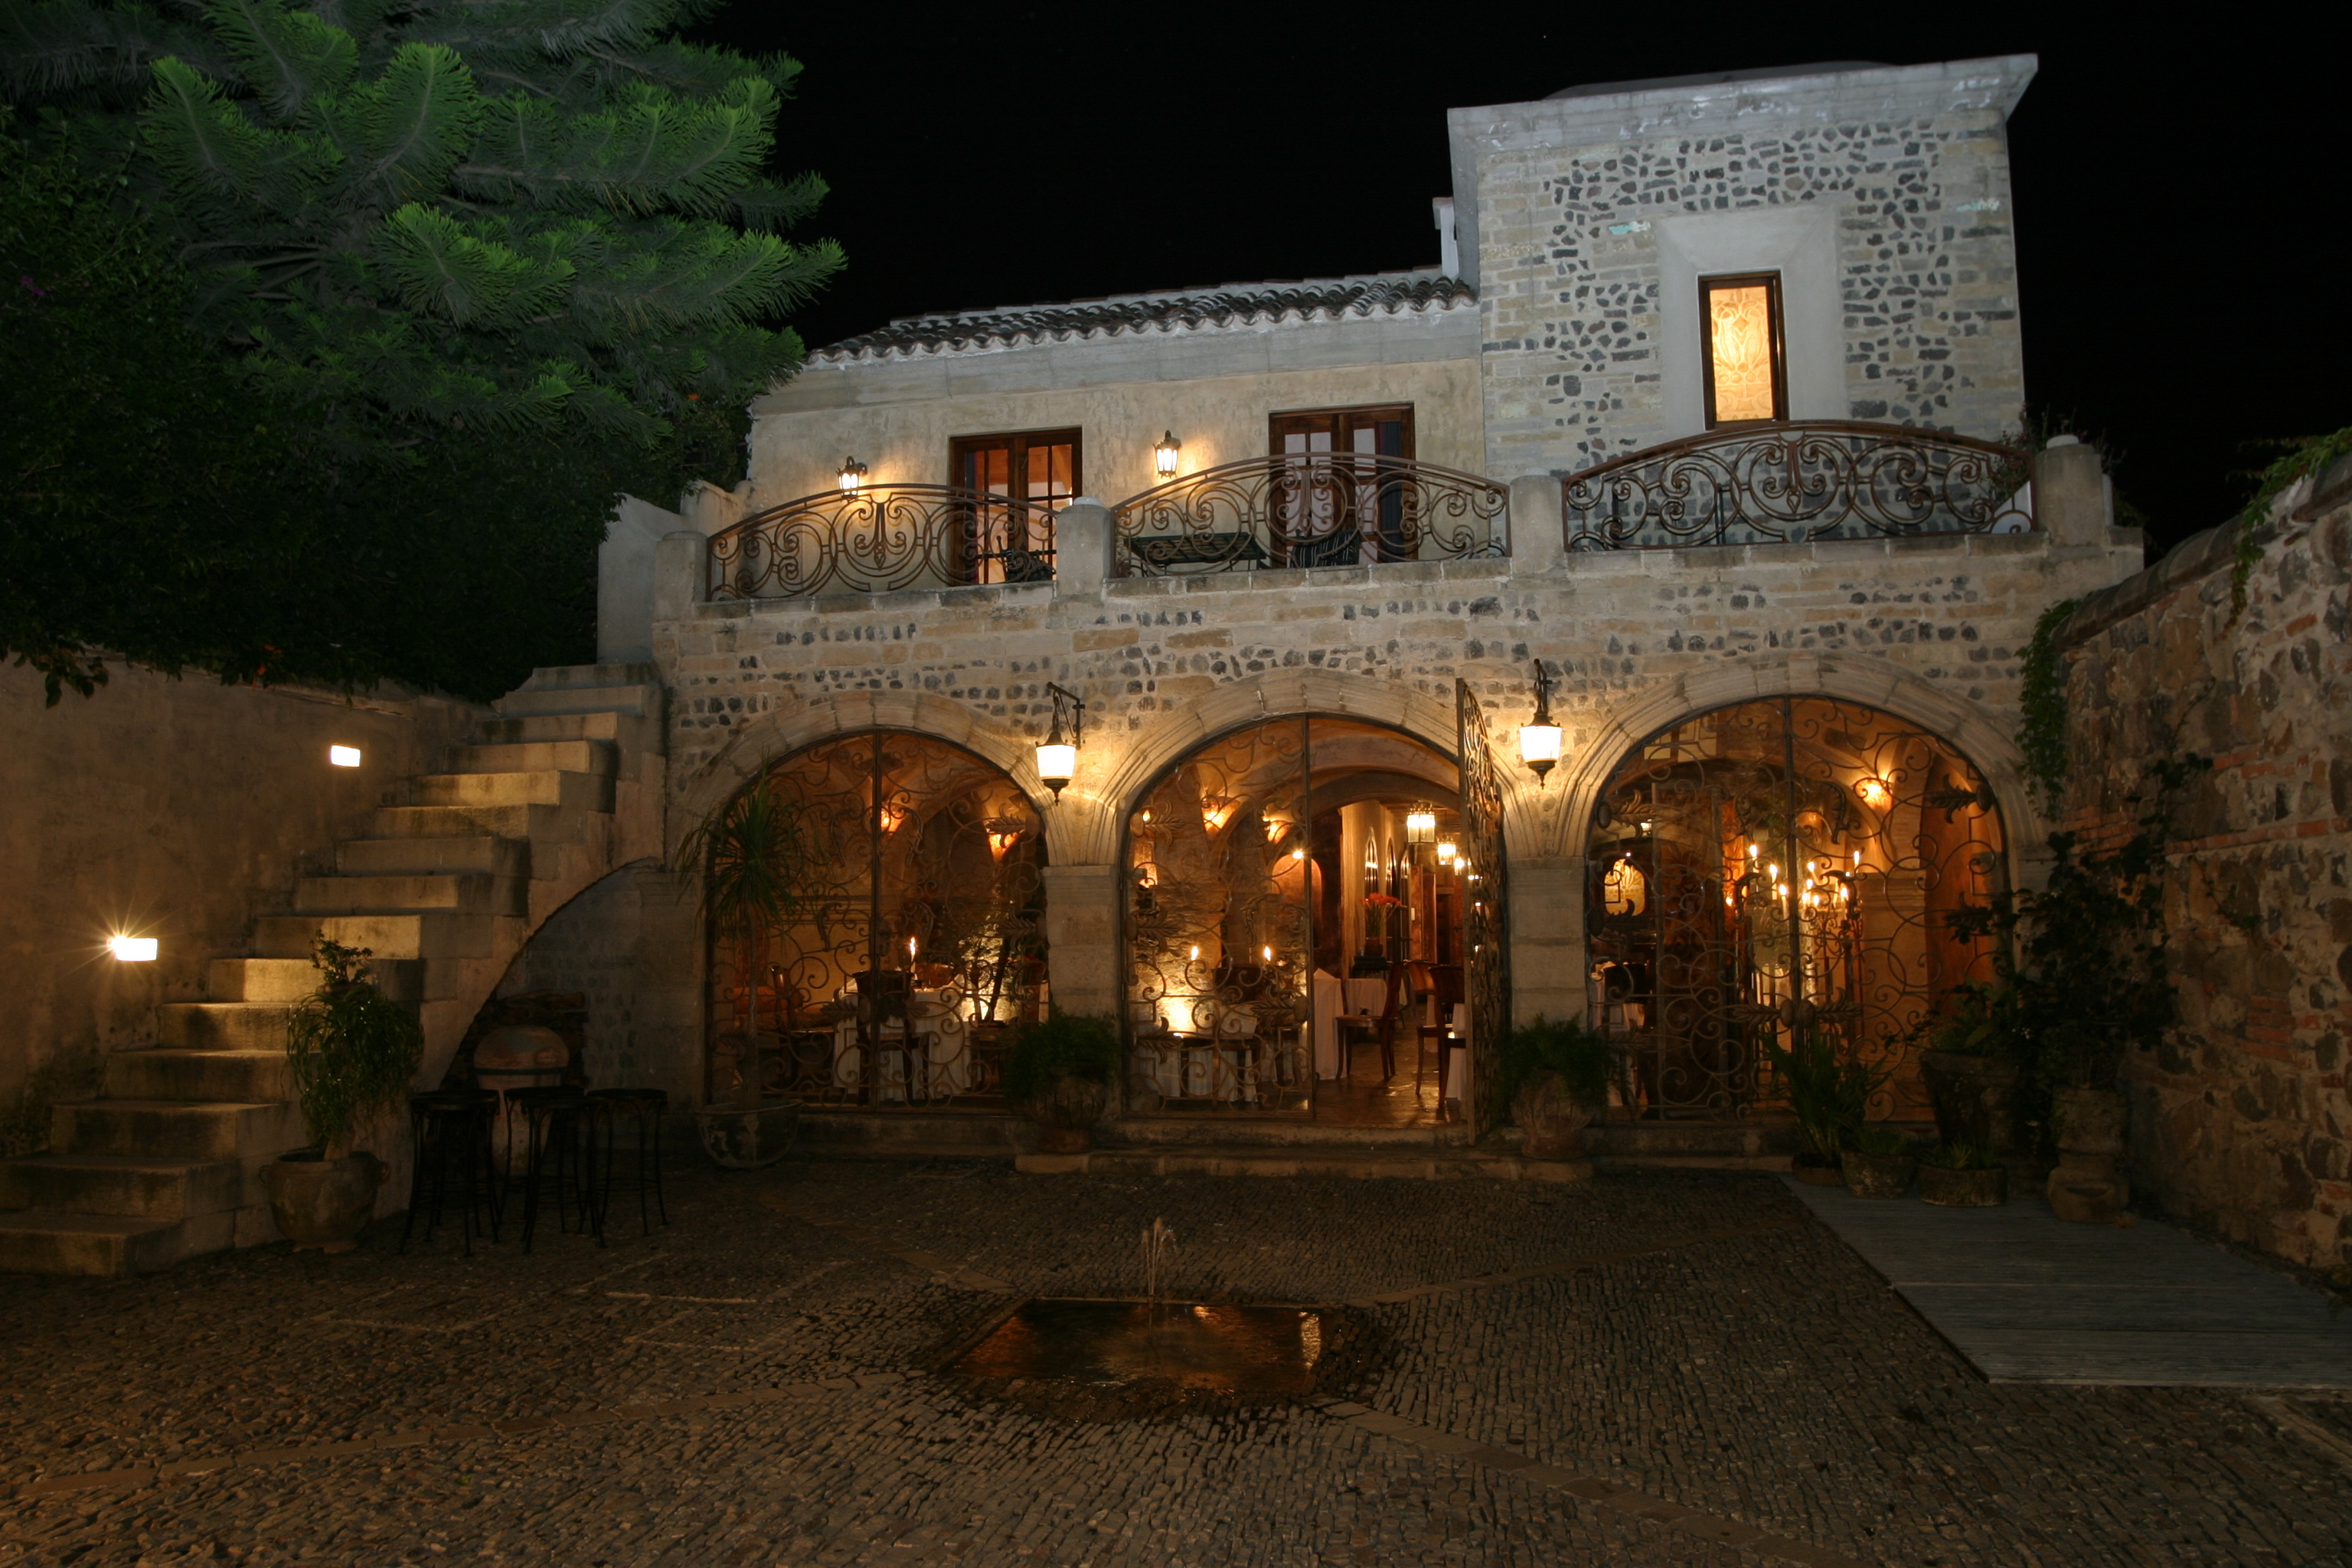 Night view of La Cueva exterior